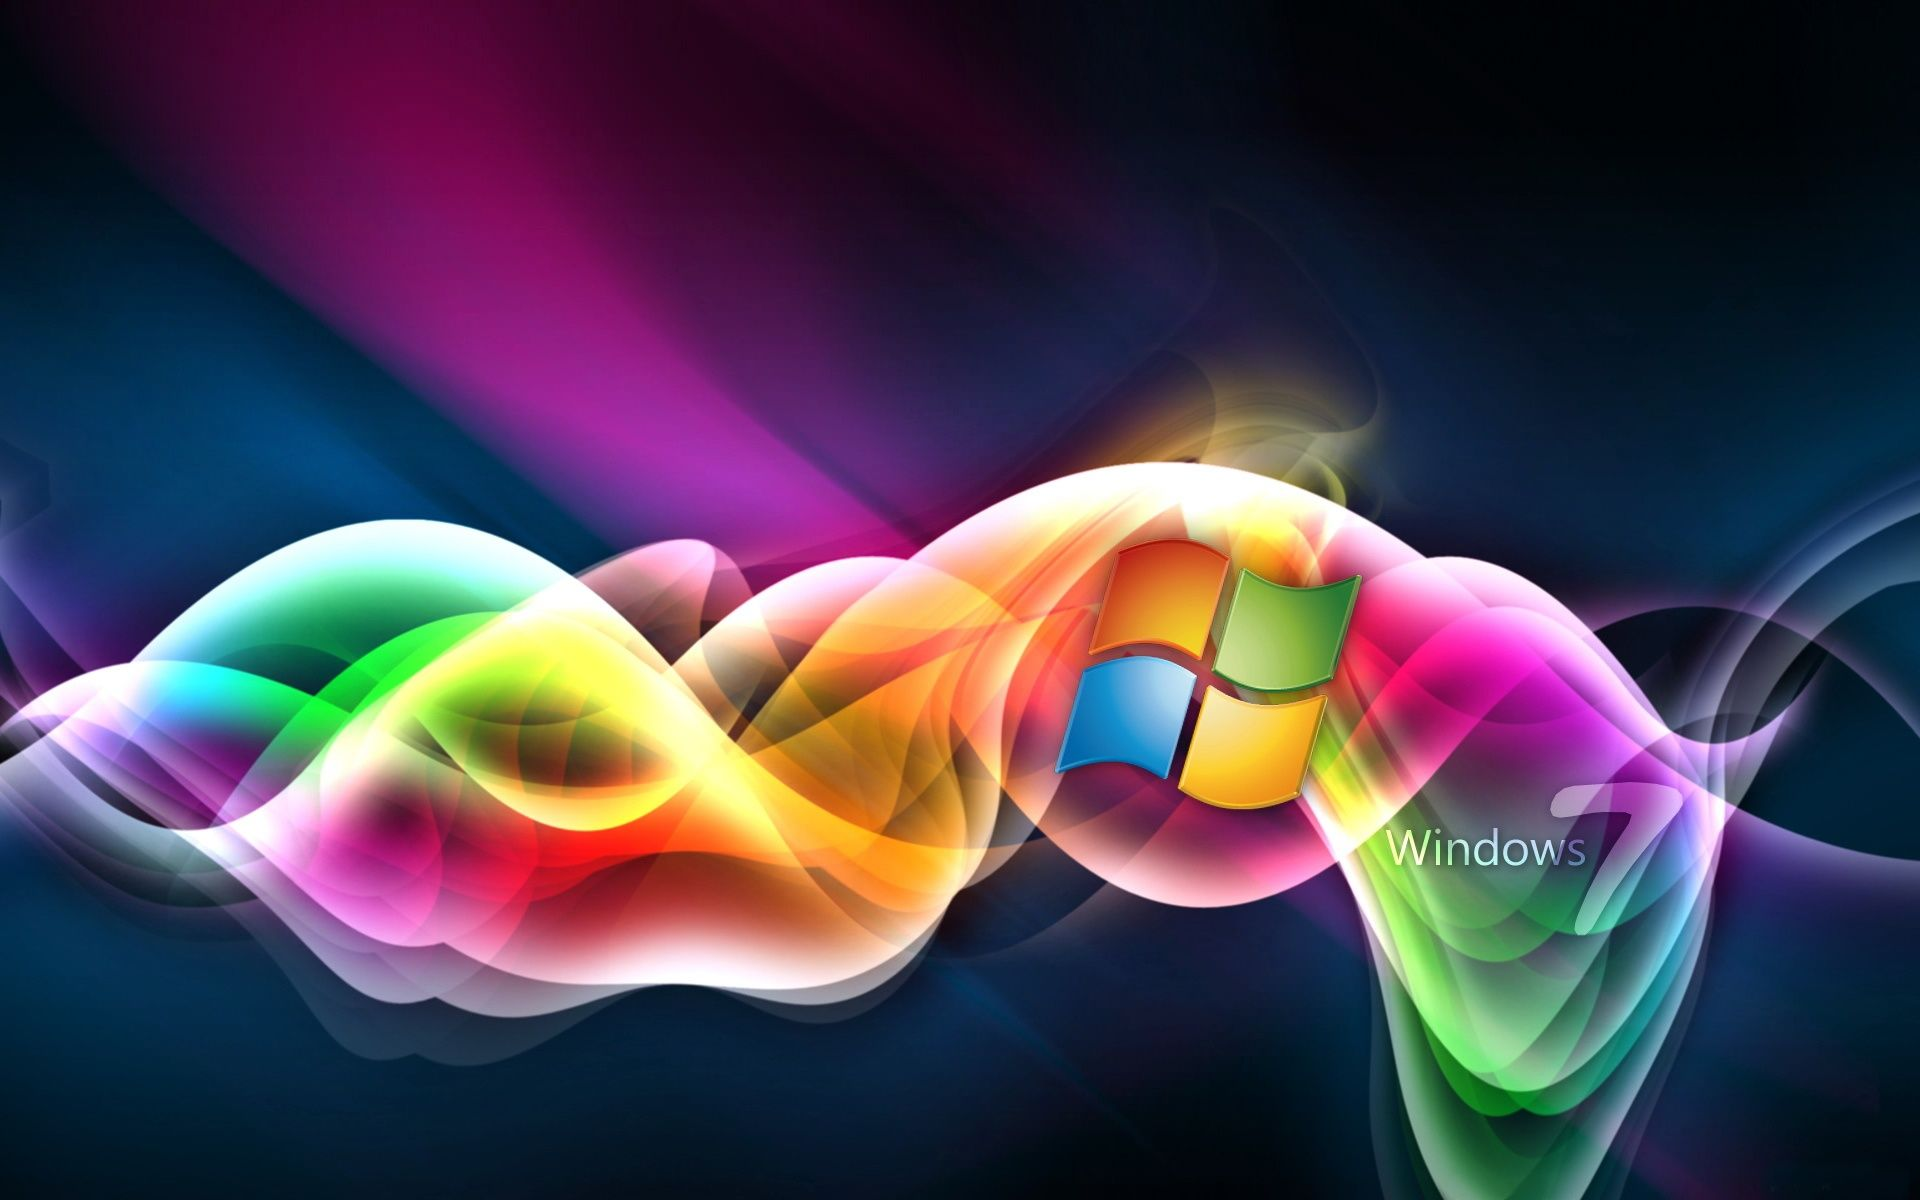 desktop backgrounds for windows 7 hd 018